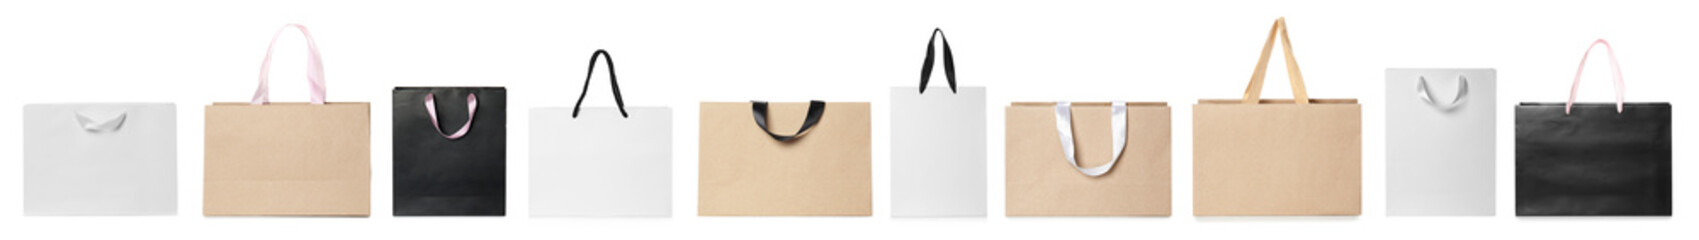 Set of different paper bags for shopping on white background. Mockup for design